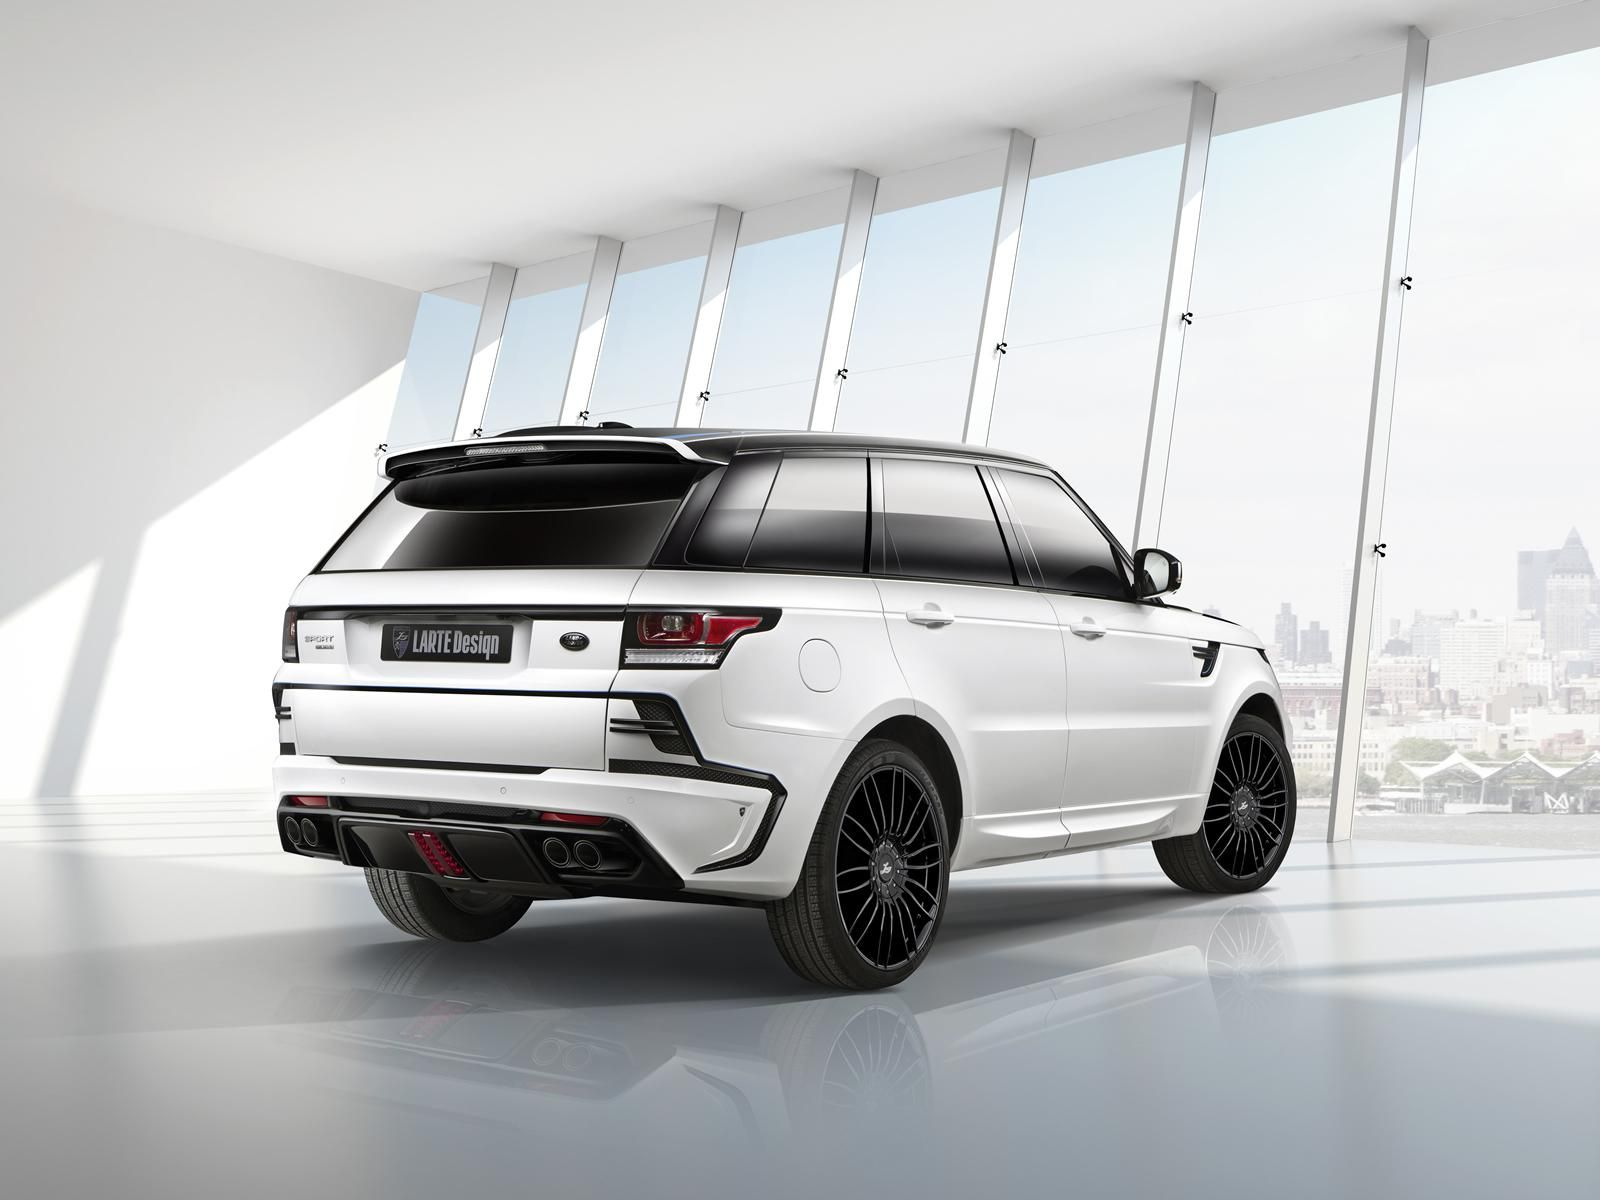 Are You Looking For 2015 Larte Desidn Range Rover Hd Wallpapers